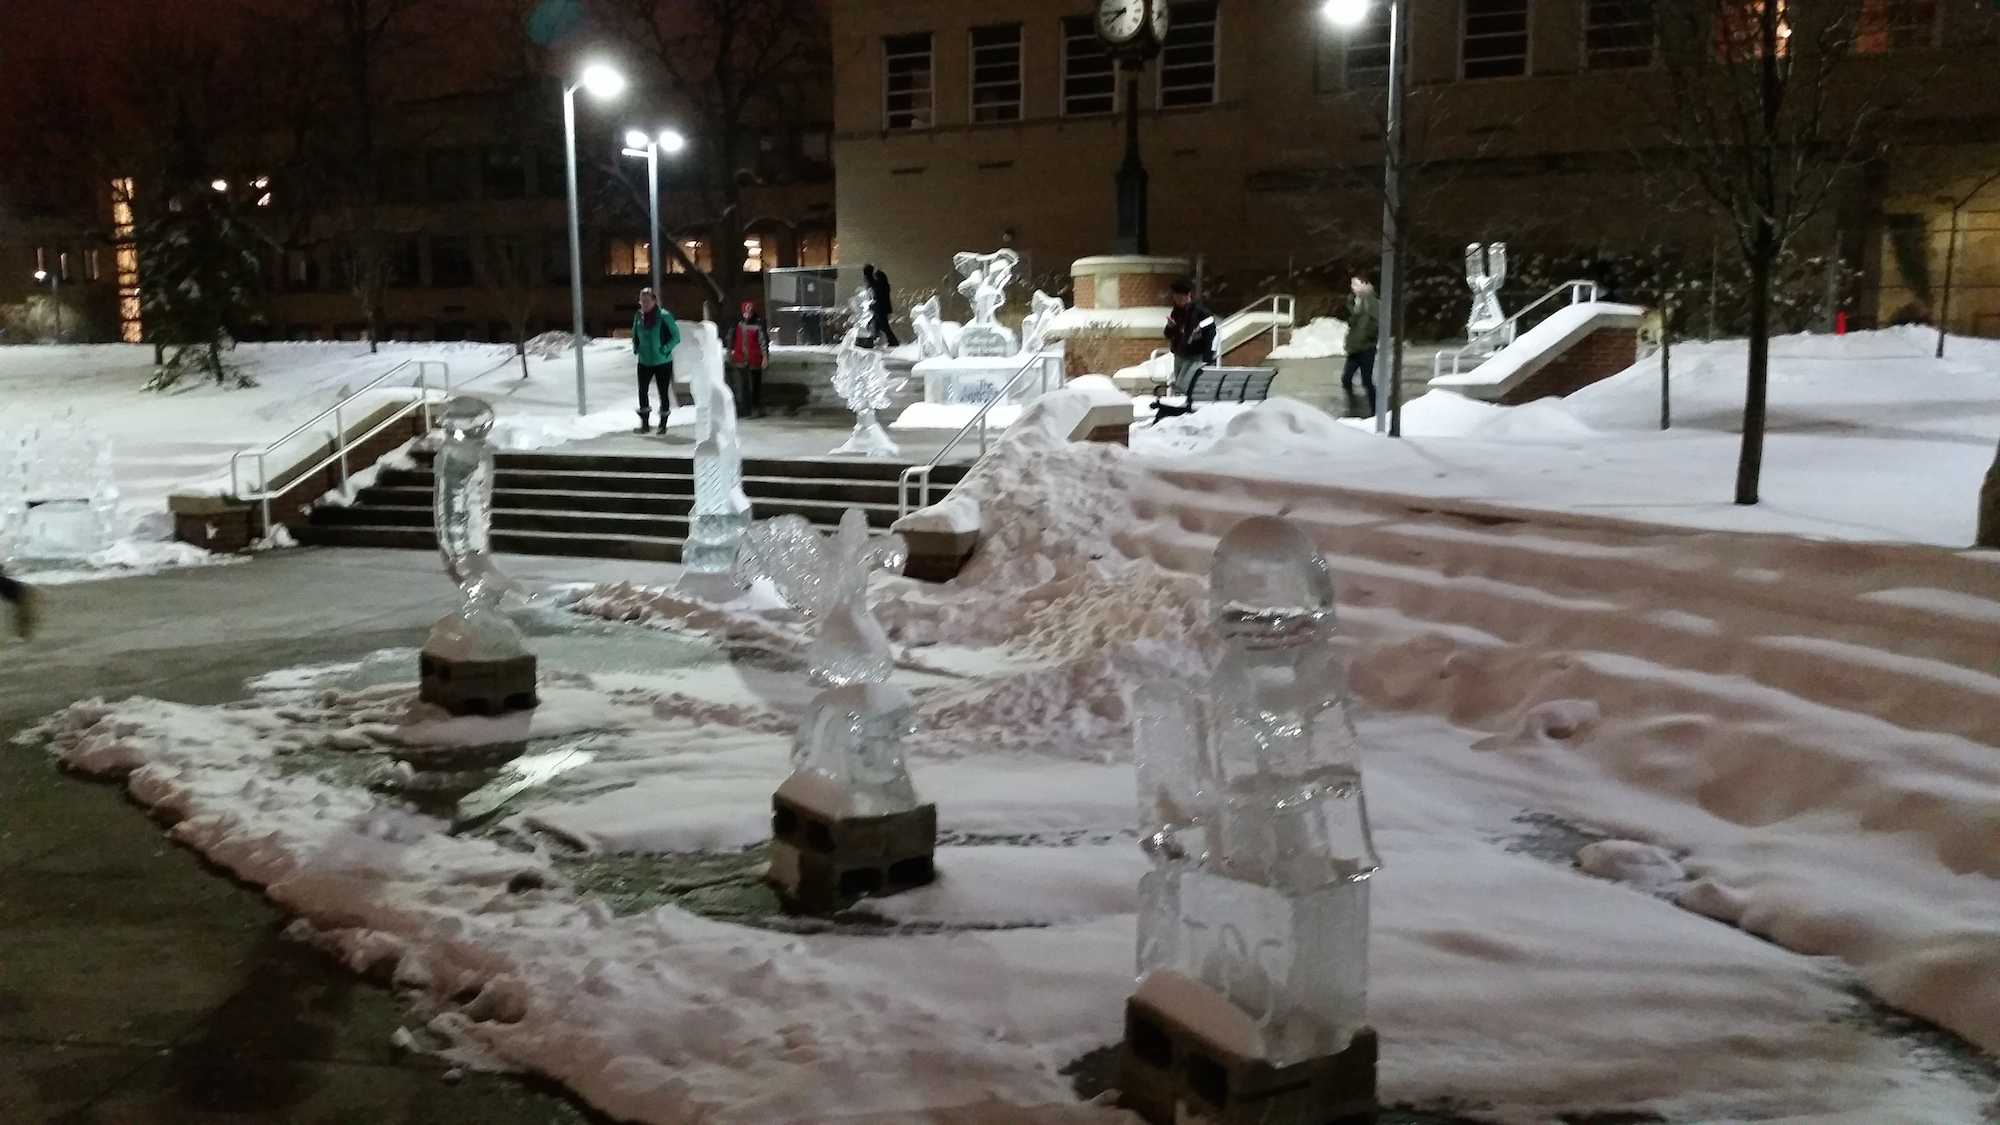 Light shines through the sculptures during the night hours on campus